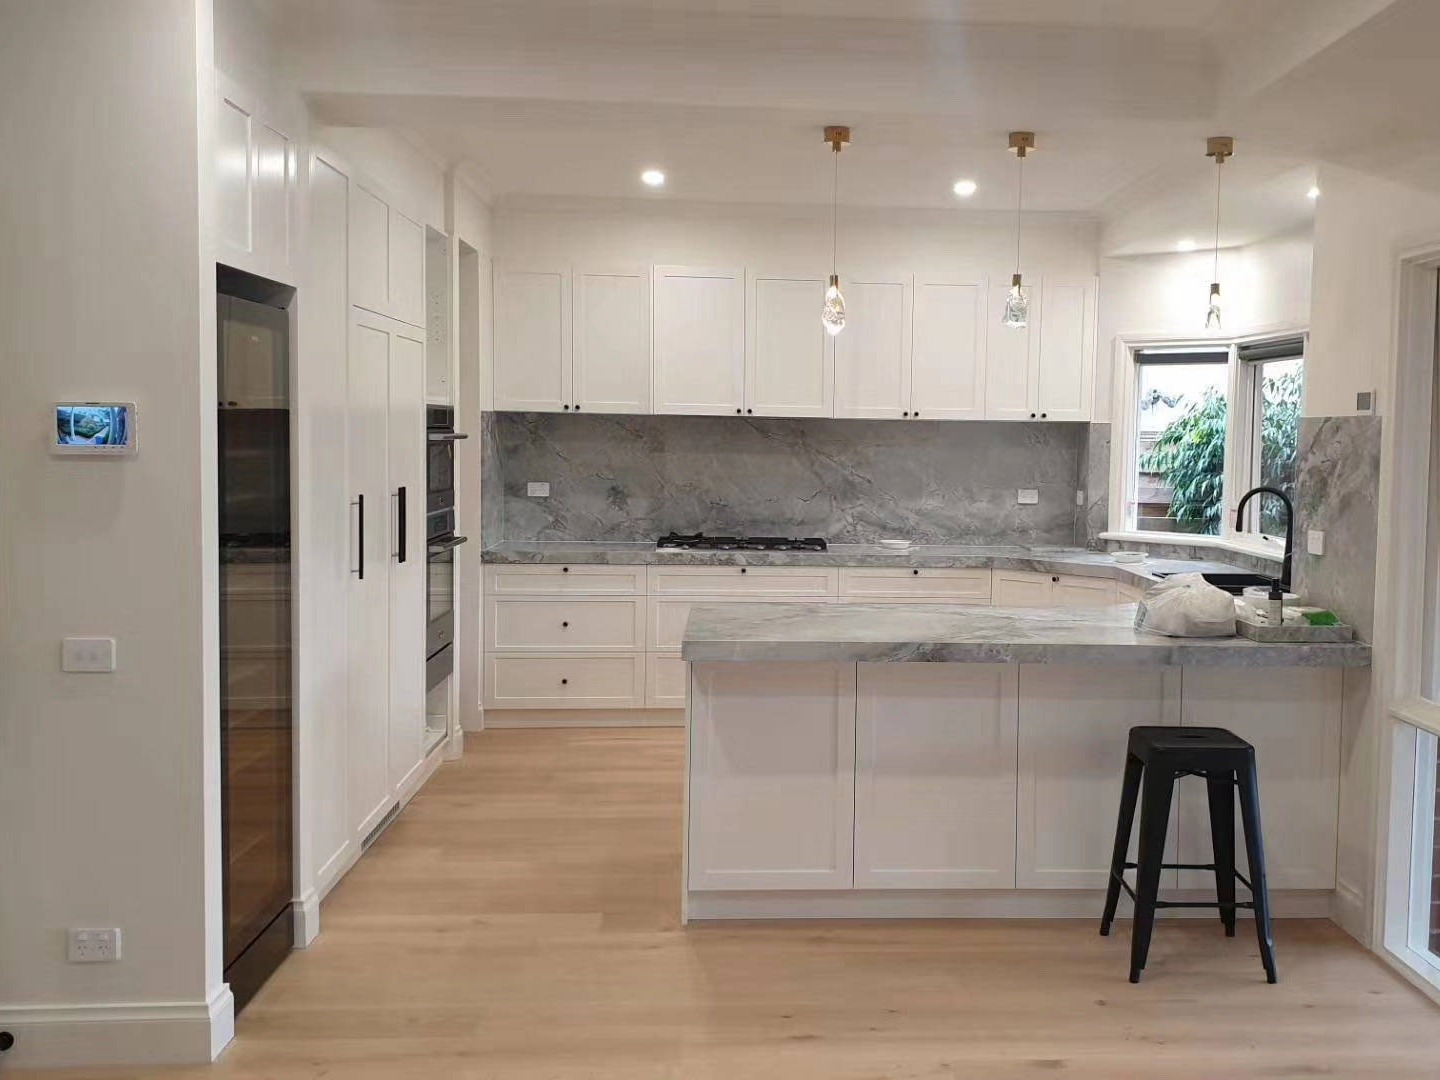 Melbourne home extension - kitchen cabinets